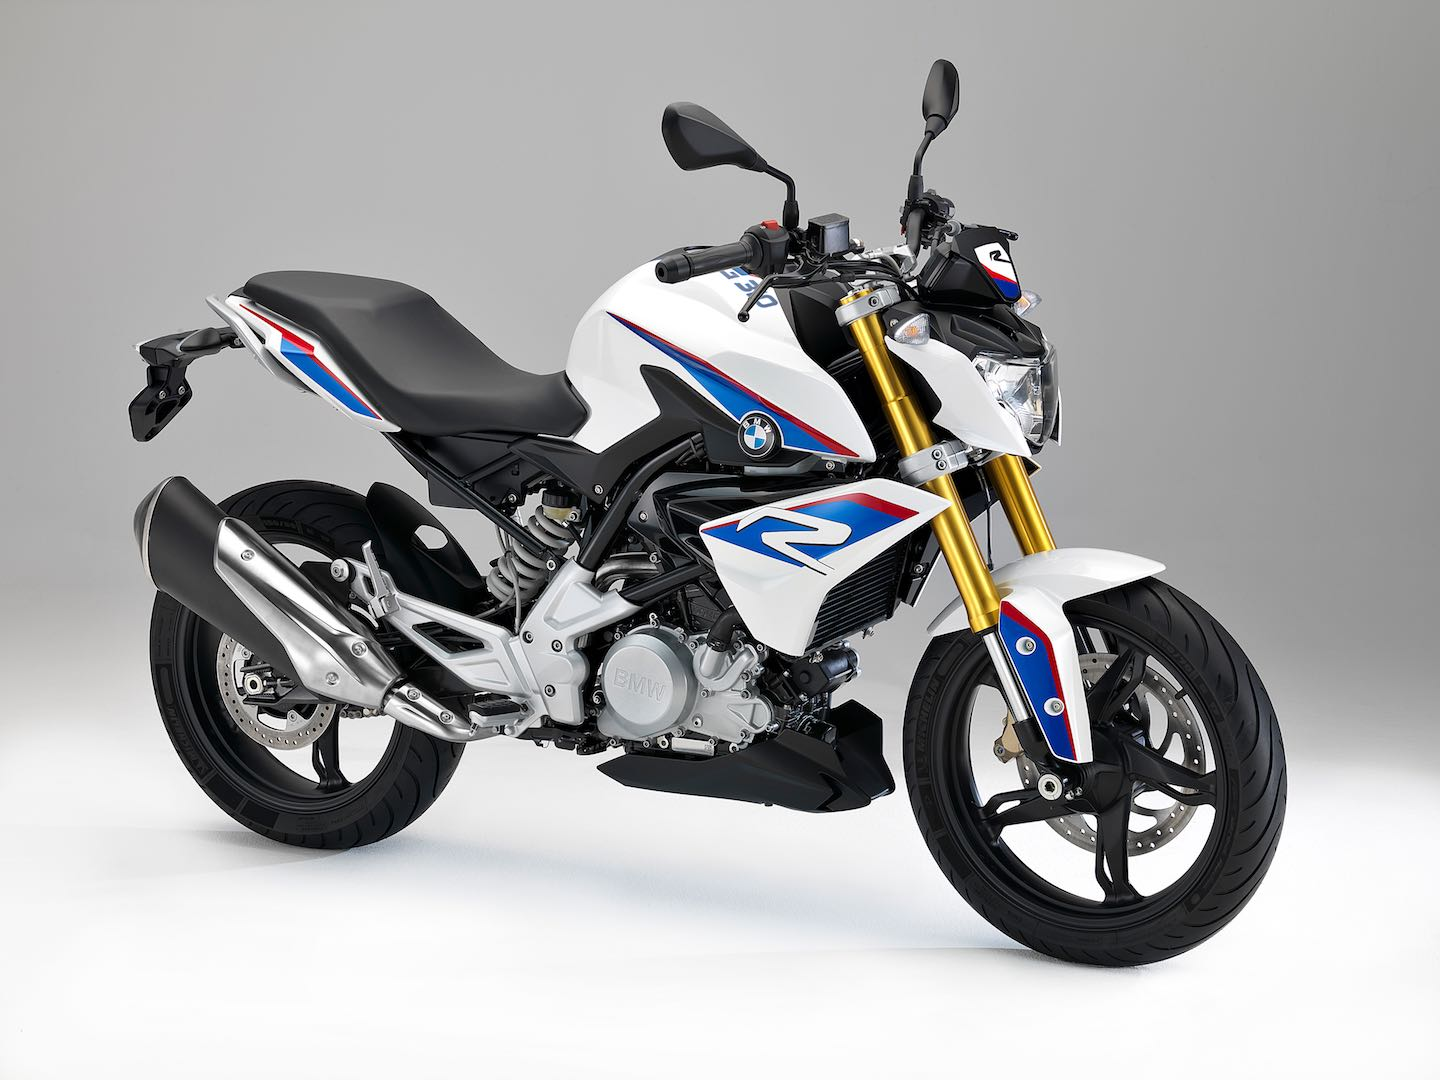 201-bmw-g-310-r-buyers-guide-specs-prices-3